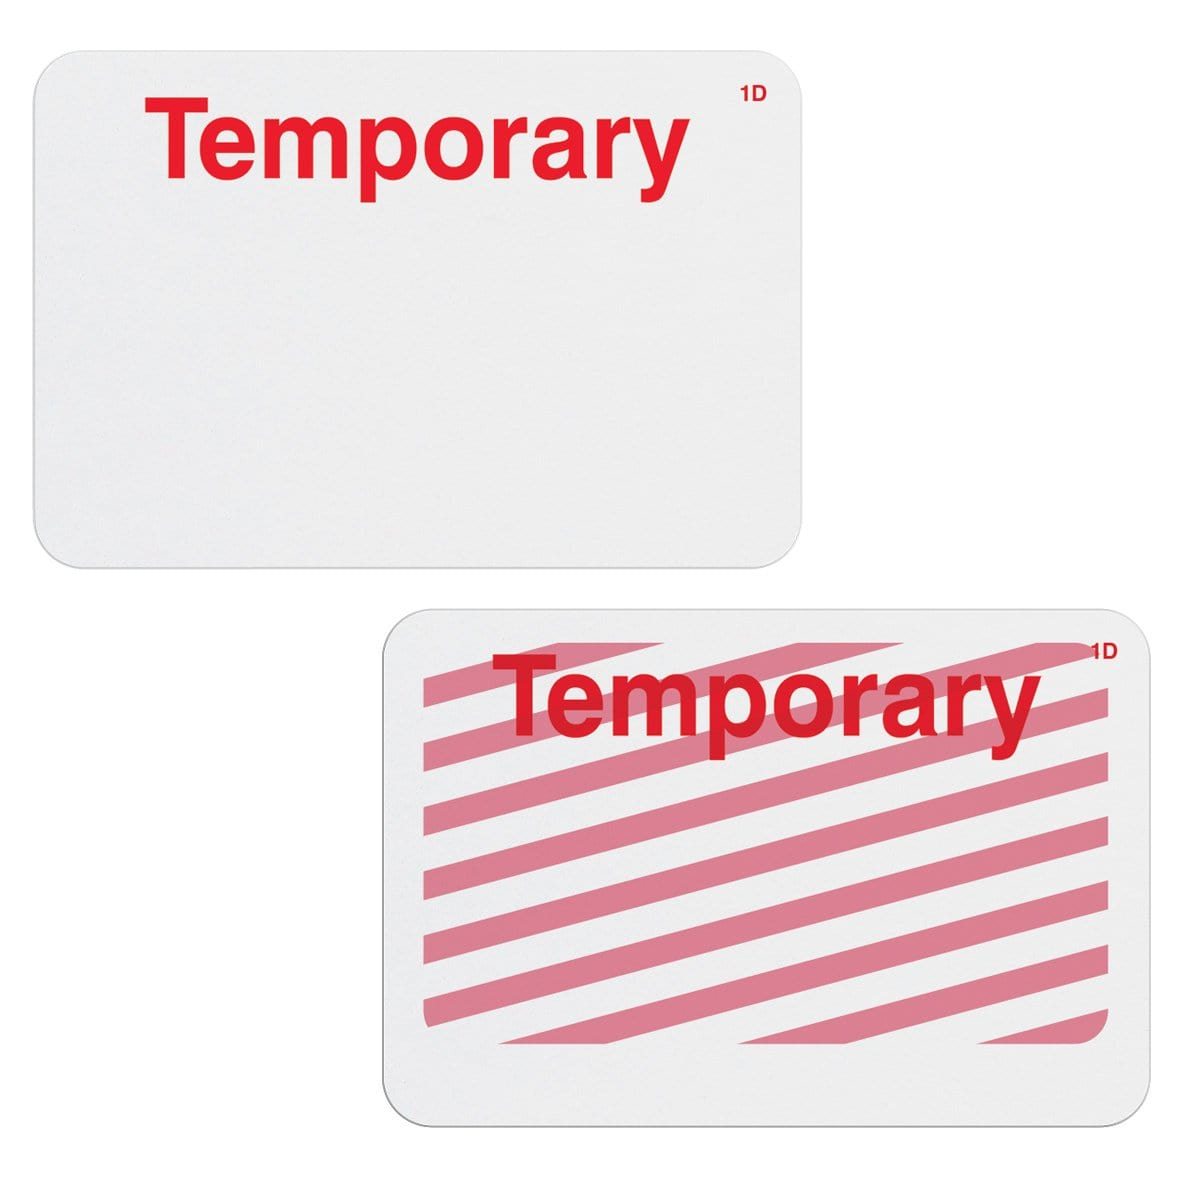 Frontpart Preprinted One Day Self Expiring Badges - Box of 1,000 (P/N T610X)